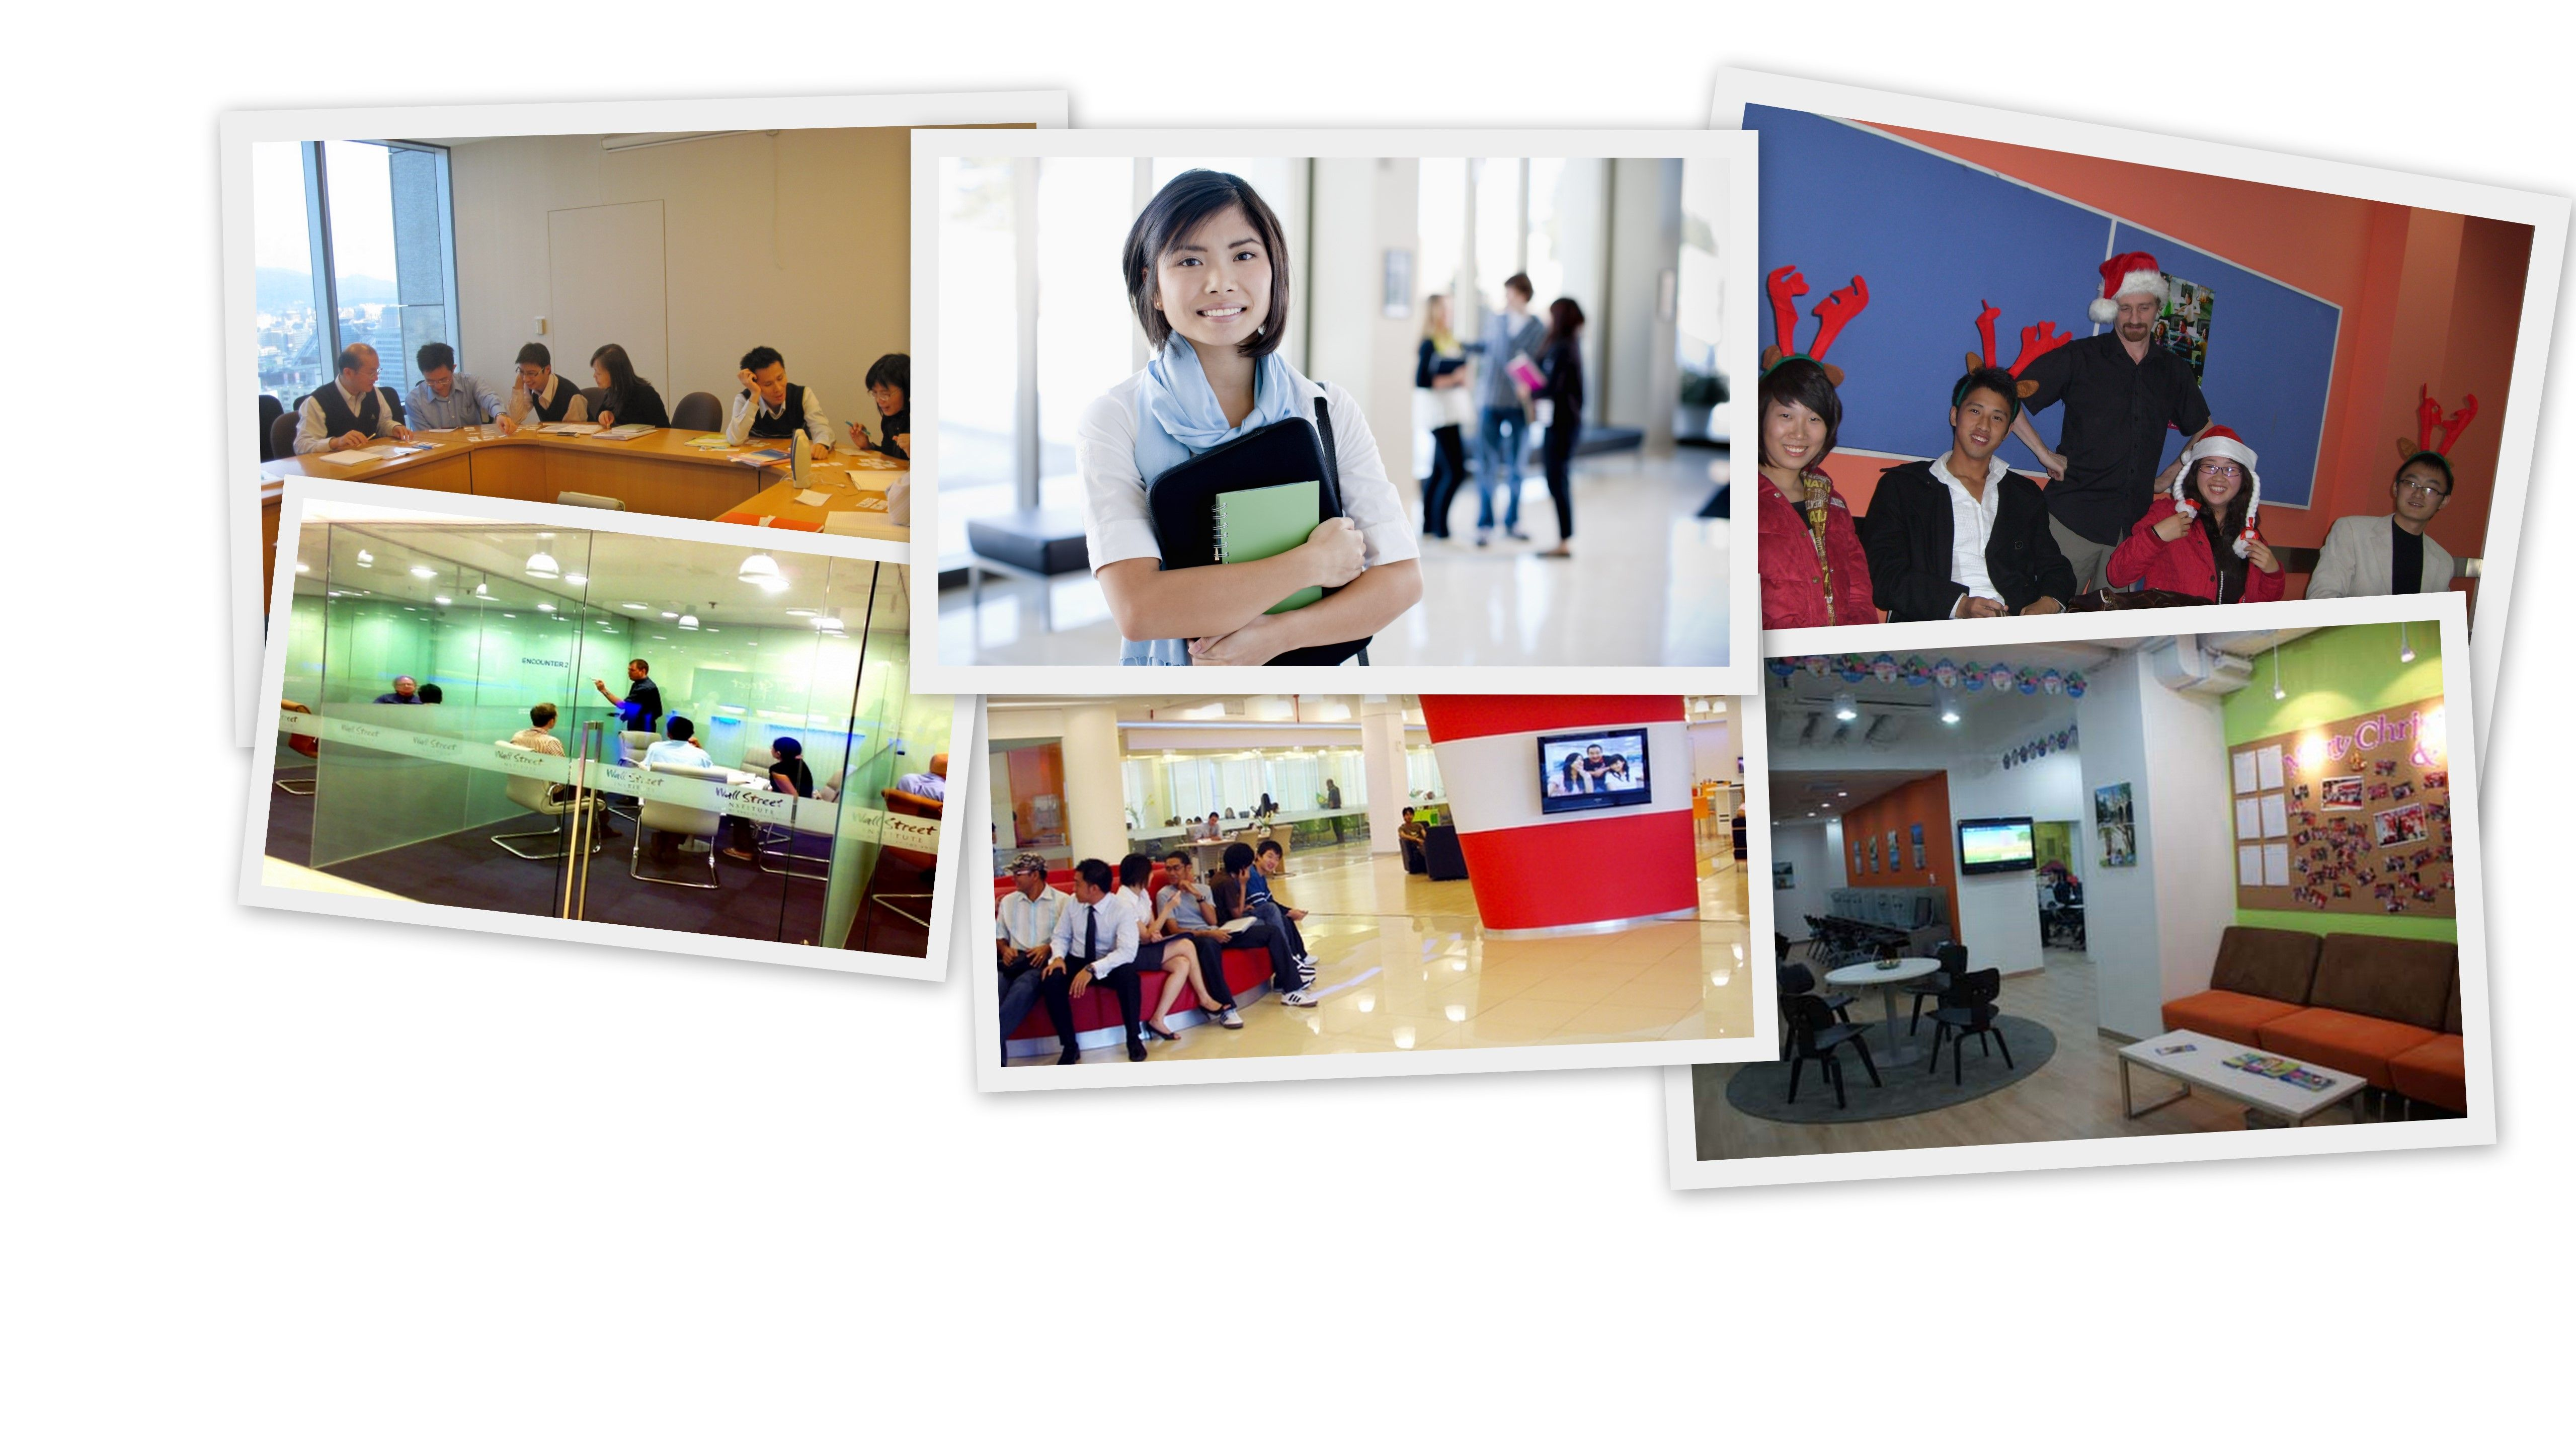 #Beijing is the wonderful country to live and work. Many people came here to teach English. Job opening in English Training School. Whether you are students, working at a job you all felt how important English as a language has become global. You can learn English from the best #Englishtraining school. View and Apply for various job vacancies that you can grab. For more Visit: http://on.fb.me/1akcOuh